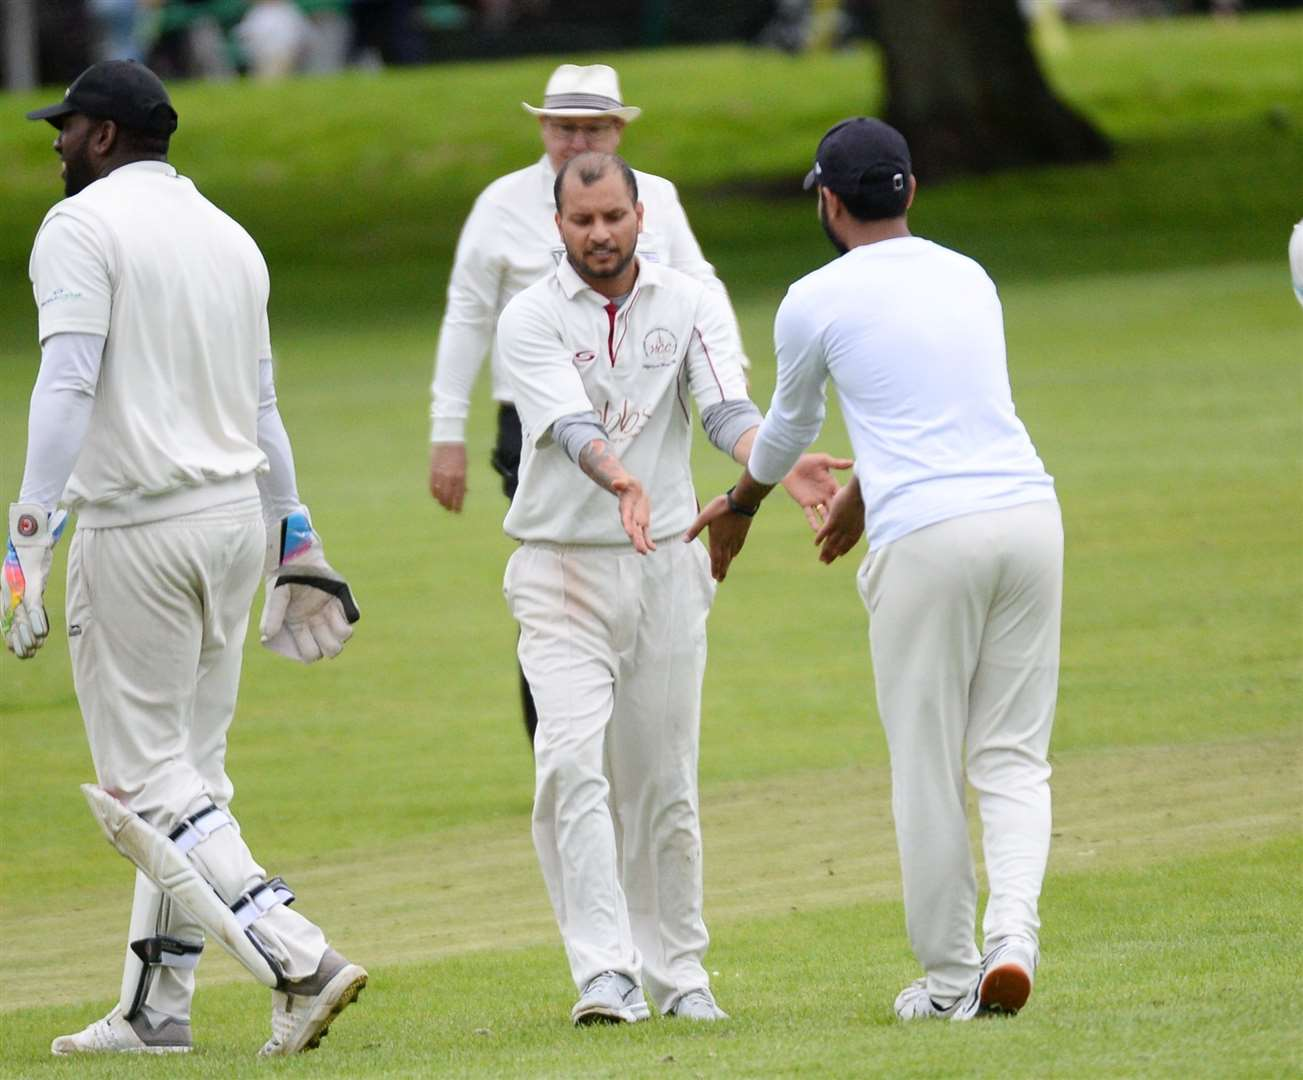 Gagandeep Singh celebrates taking a wicket in Highland's last match against Ross County. Picture: Gary Anthony. Image No.044421